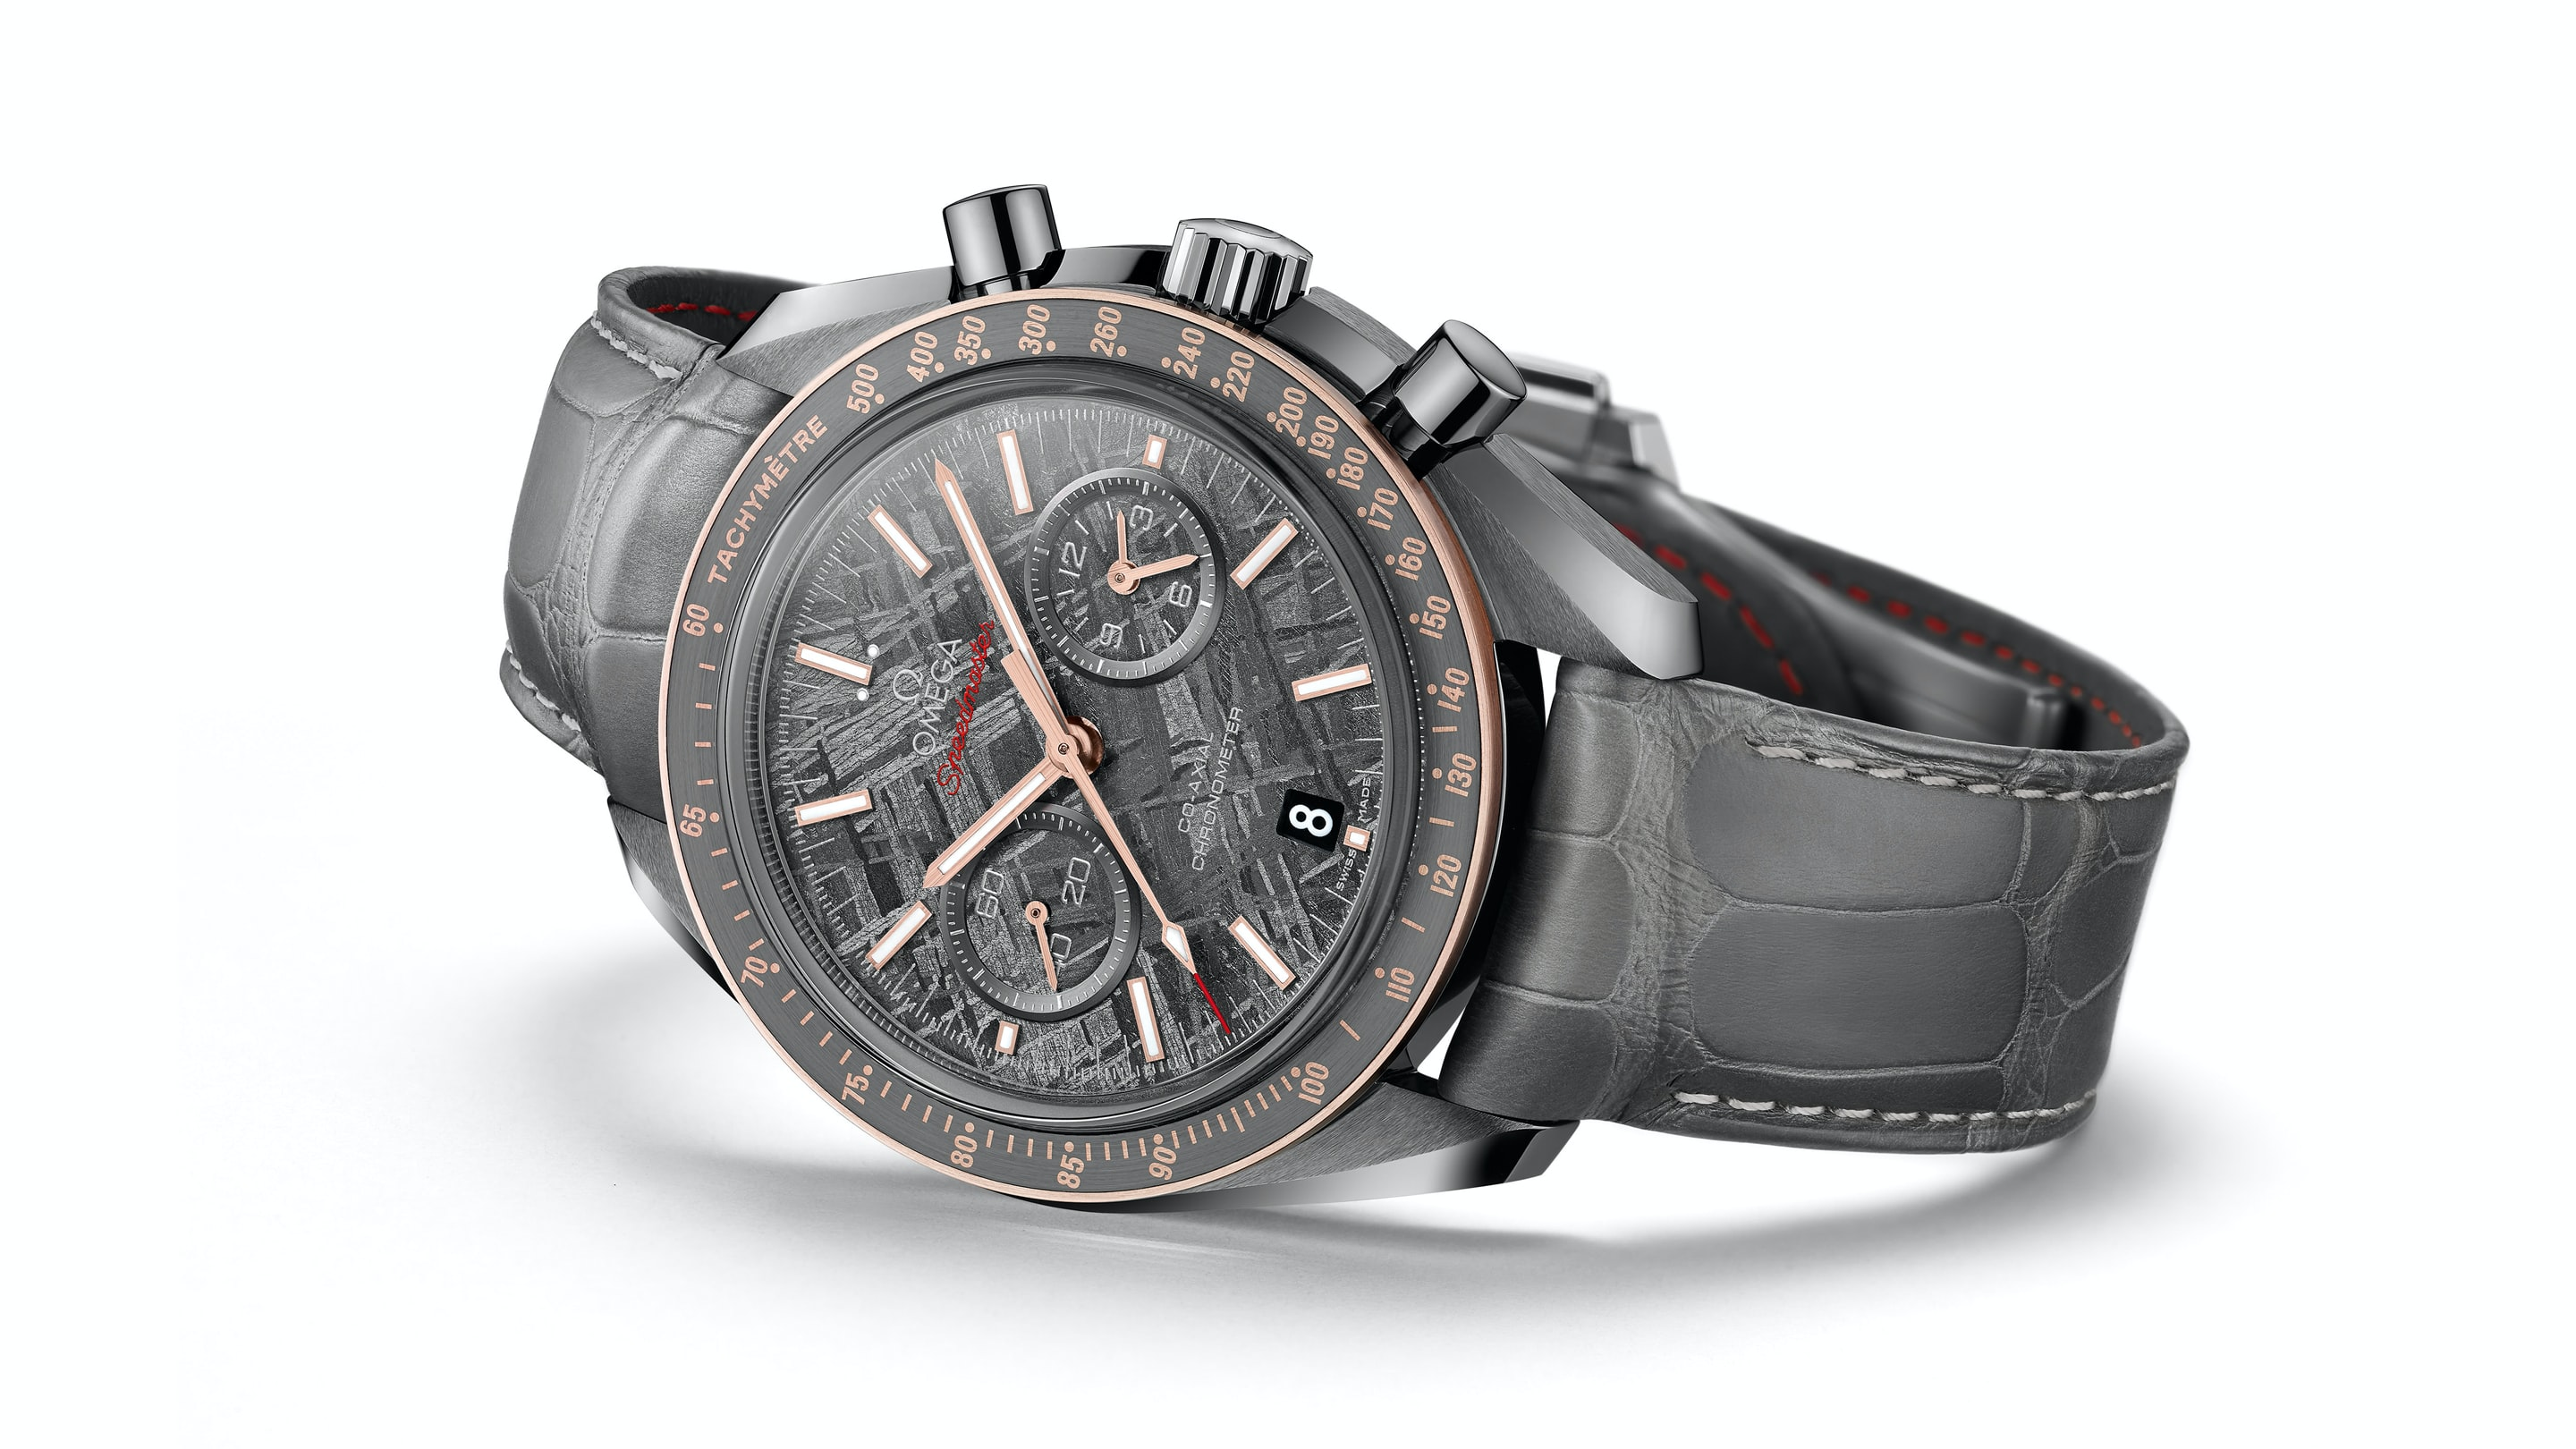 Introducing: The Omega Grey Side Of The Moon 'Meteorite,' The Most Exciting Grey Has Ever Been